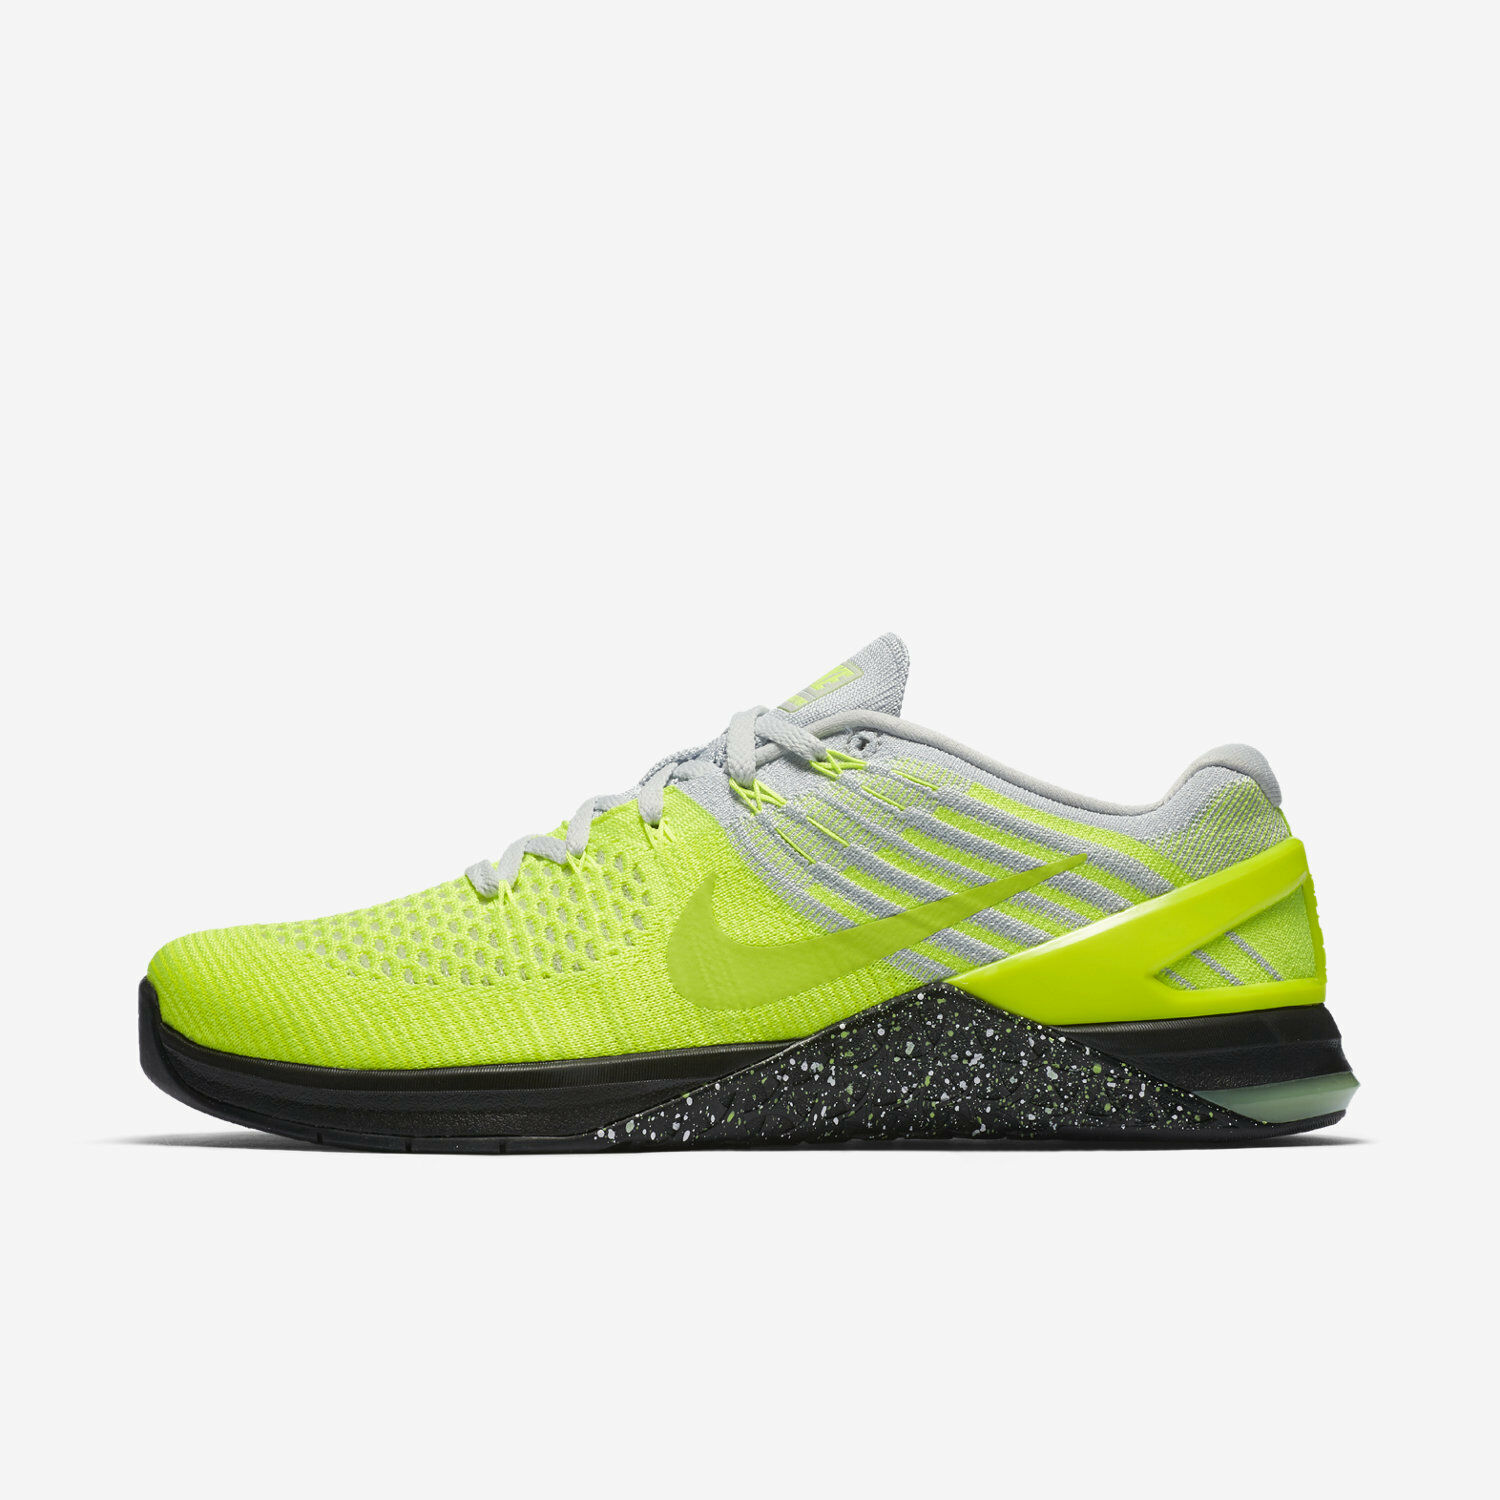 Mens Nike Metcon DSX Flyknit Sz 8.5-14 Volt Ghost Green 852930-701 FREE SHIPPING